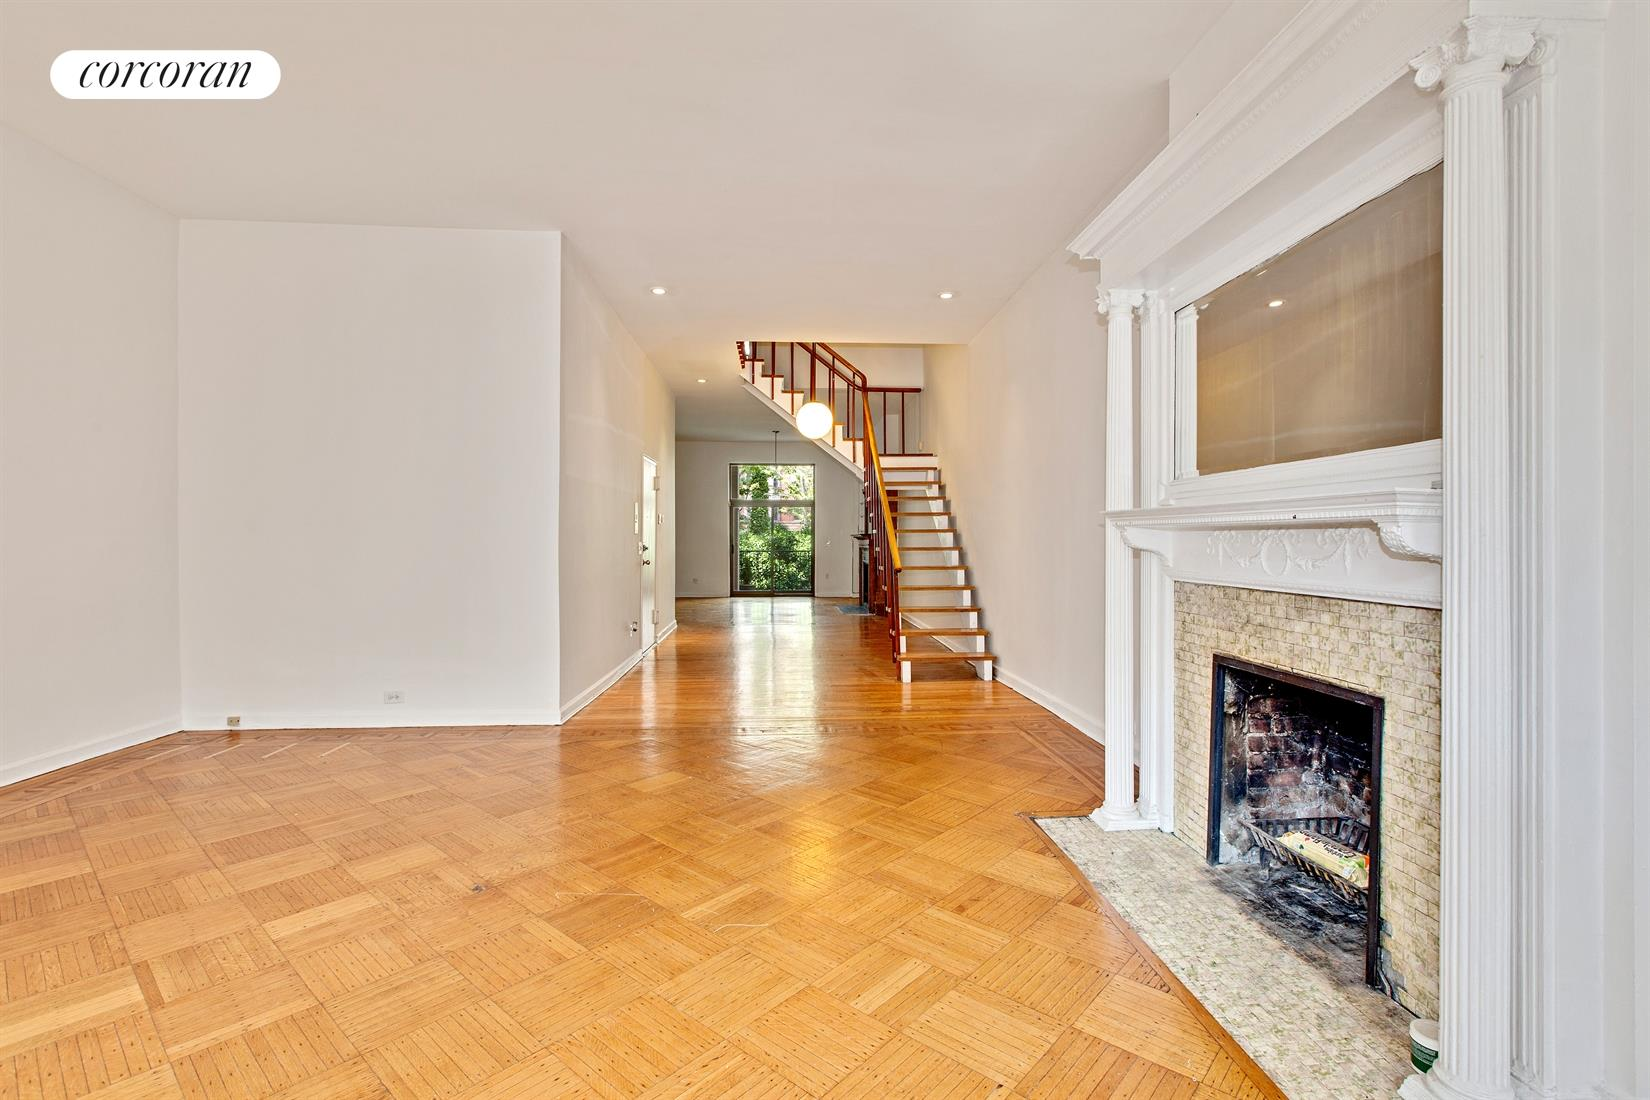 121 West 88th Street, 2, Living Room